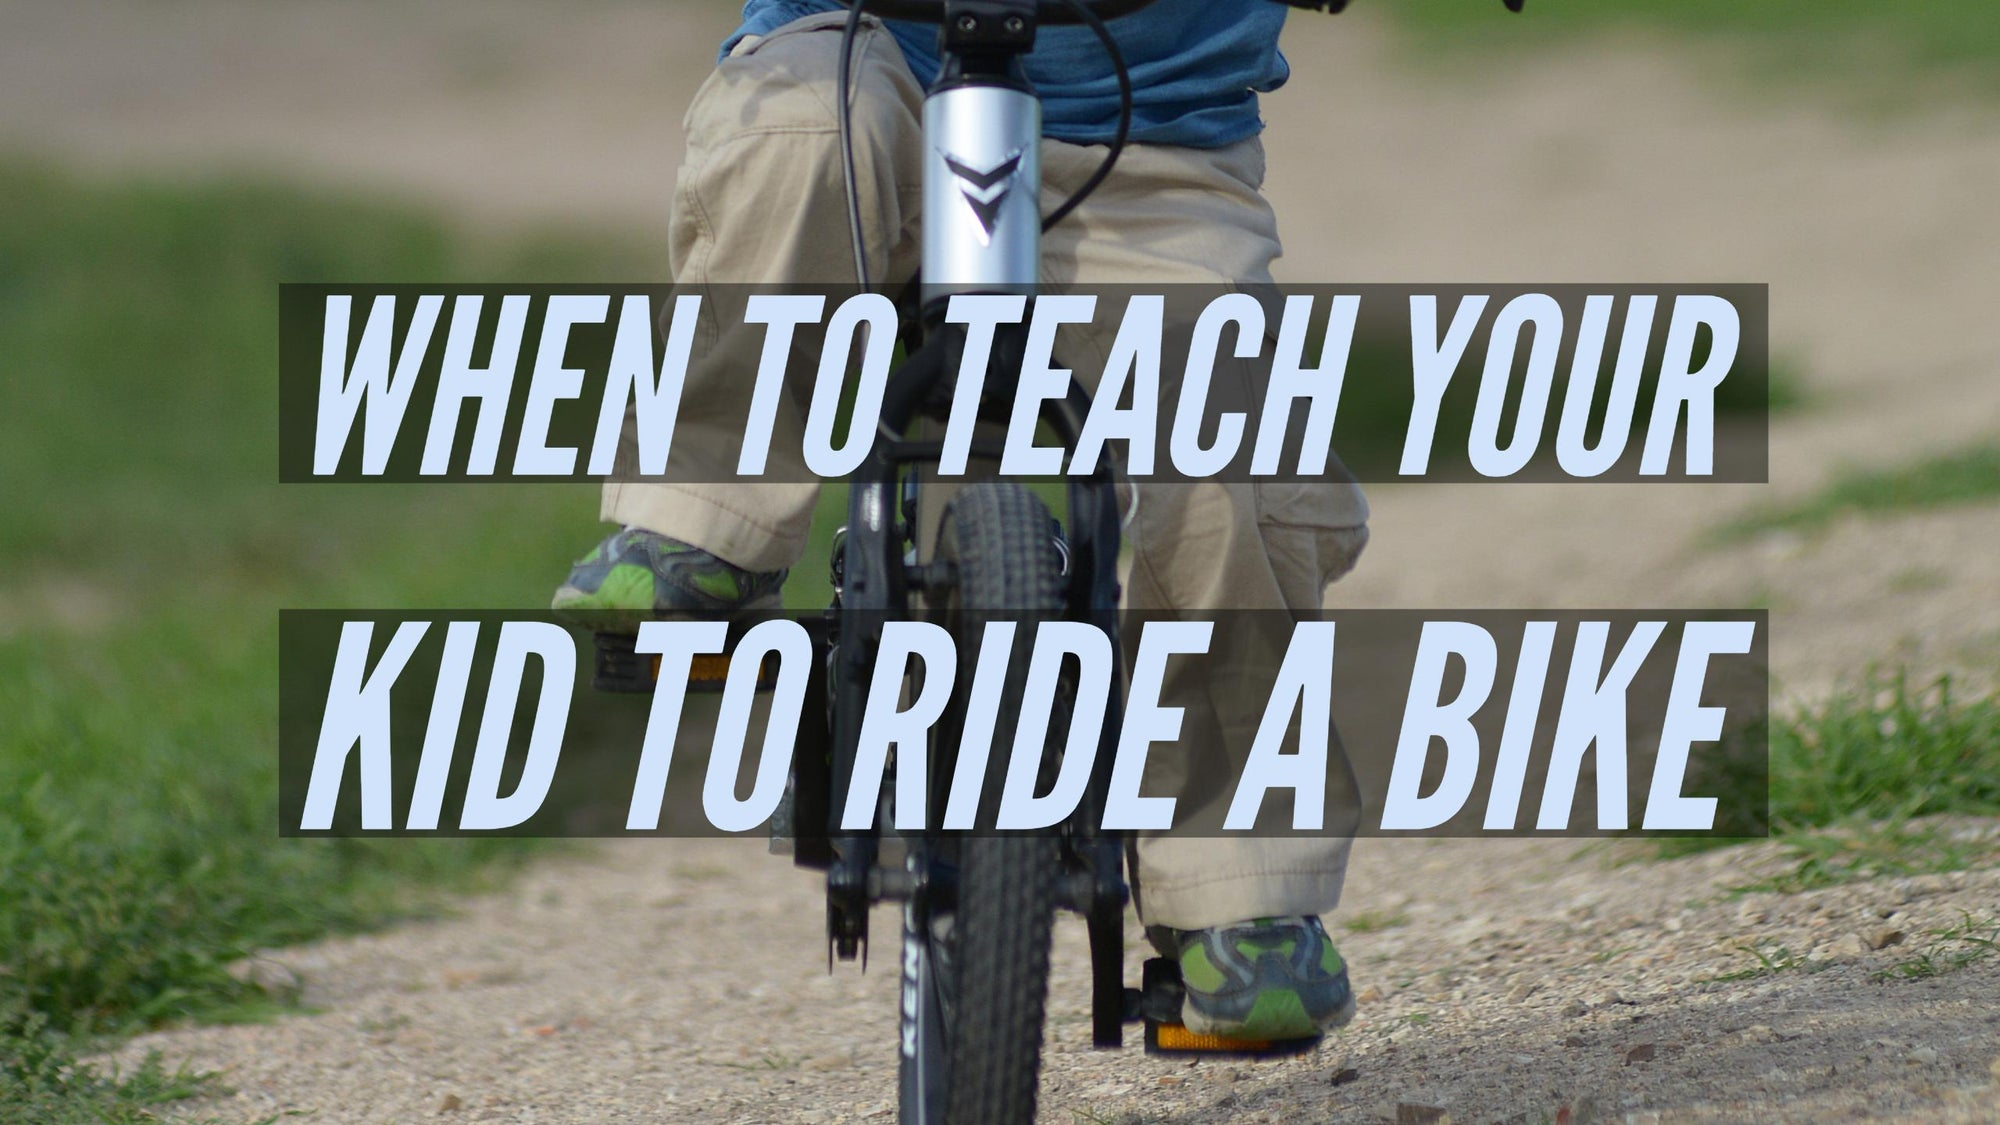 At what age should you teach a kid to ride a bike?